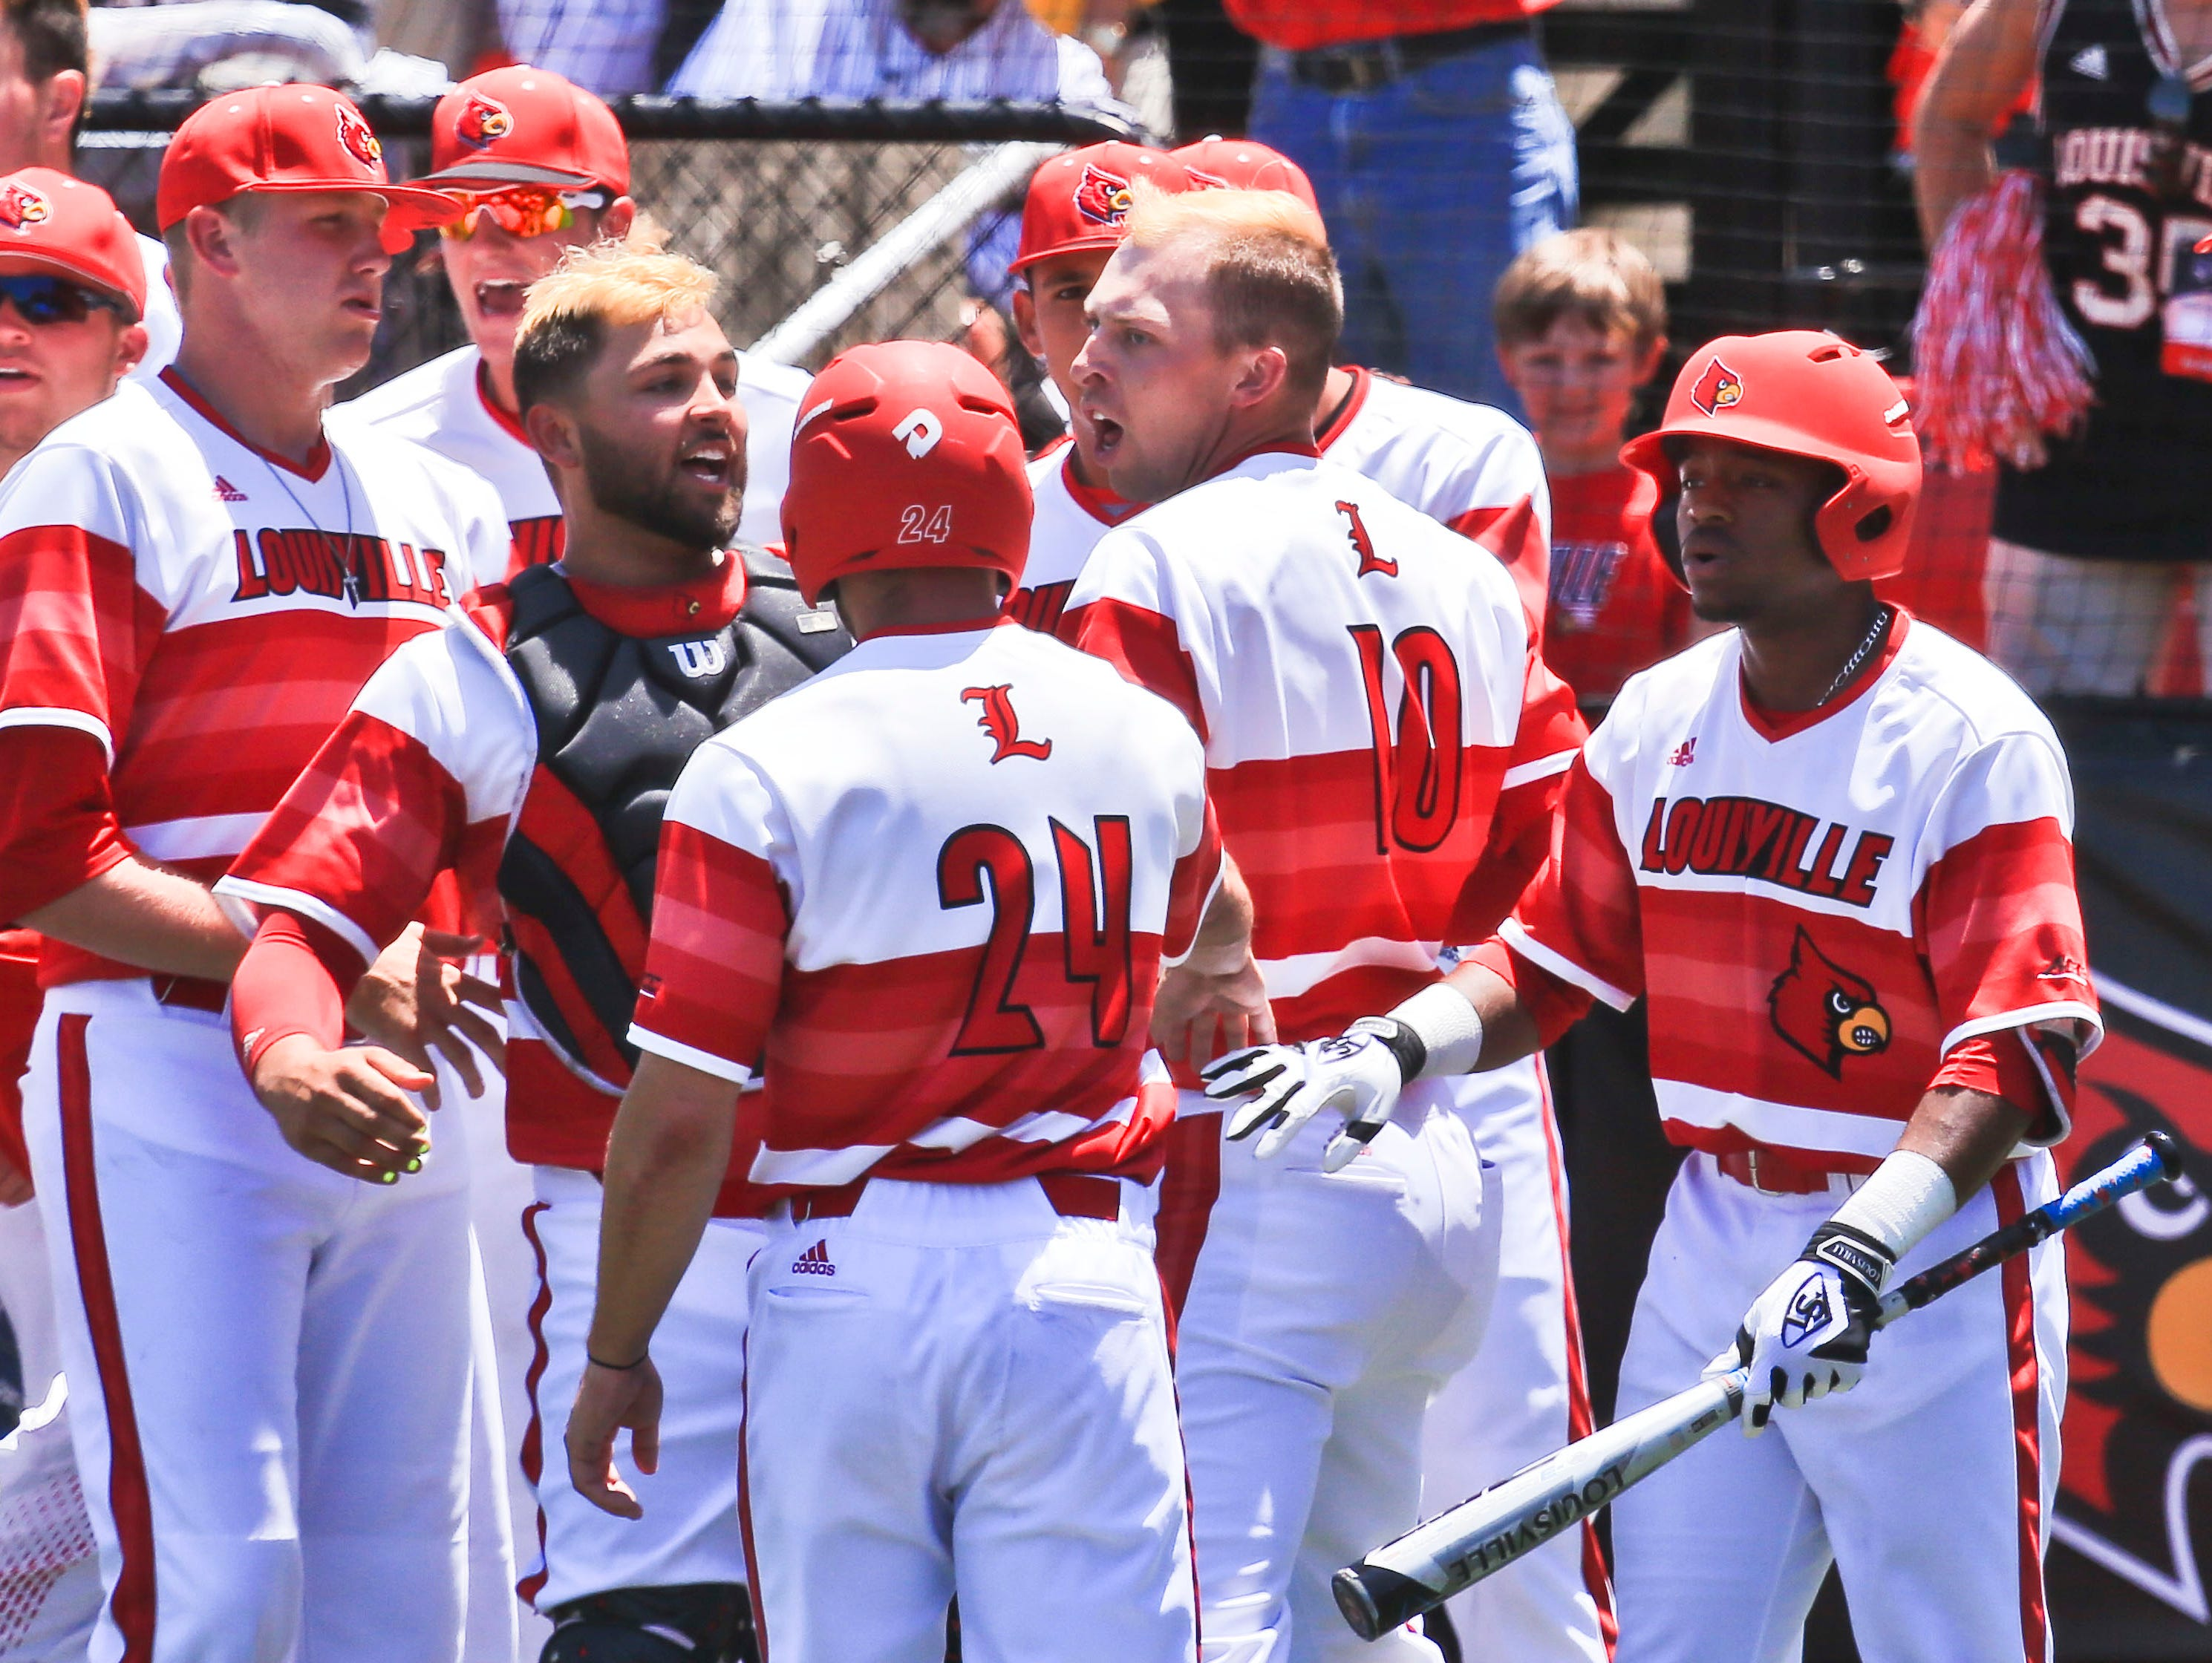 Drew Ellis yells back towards the Kentucky team as he greets teammates after his three-run homer sails over left field fence in the bottom of the fifth inning to put the Cards up 5-0 over Kentucky in the first game of the Super Regional Friday.